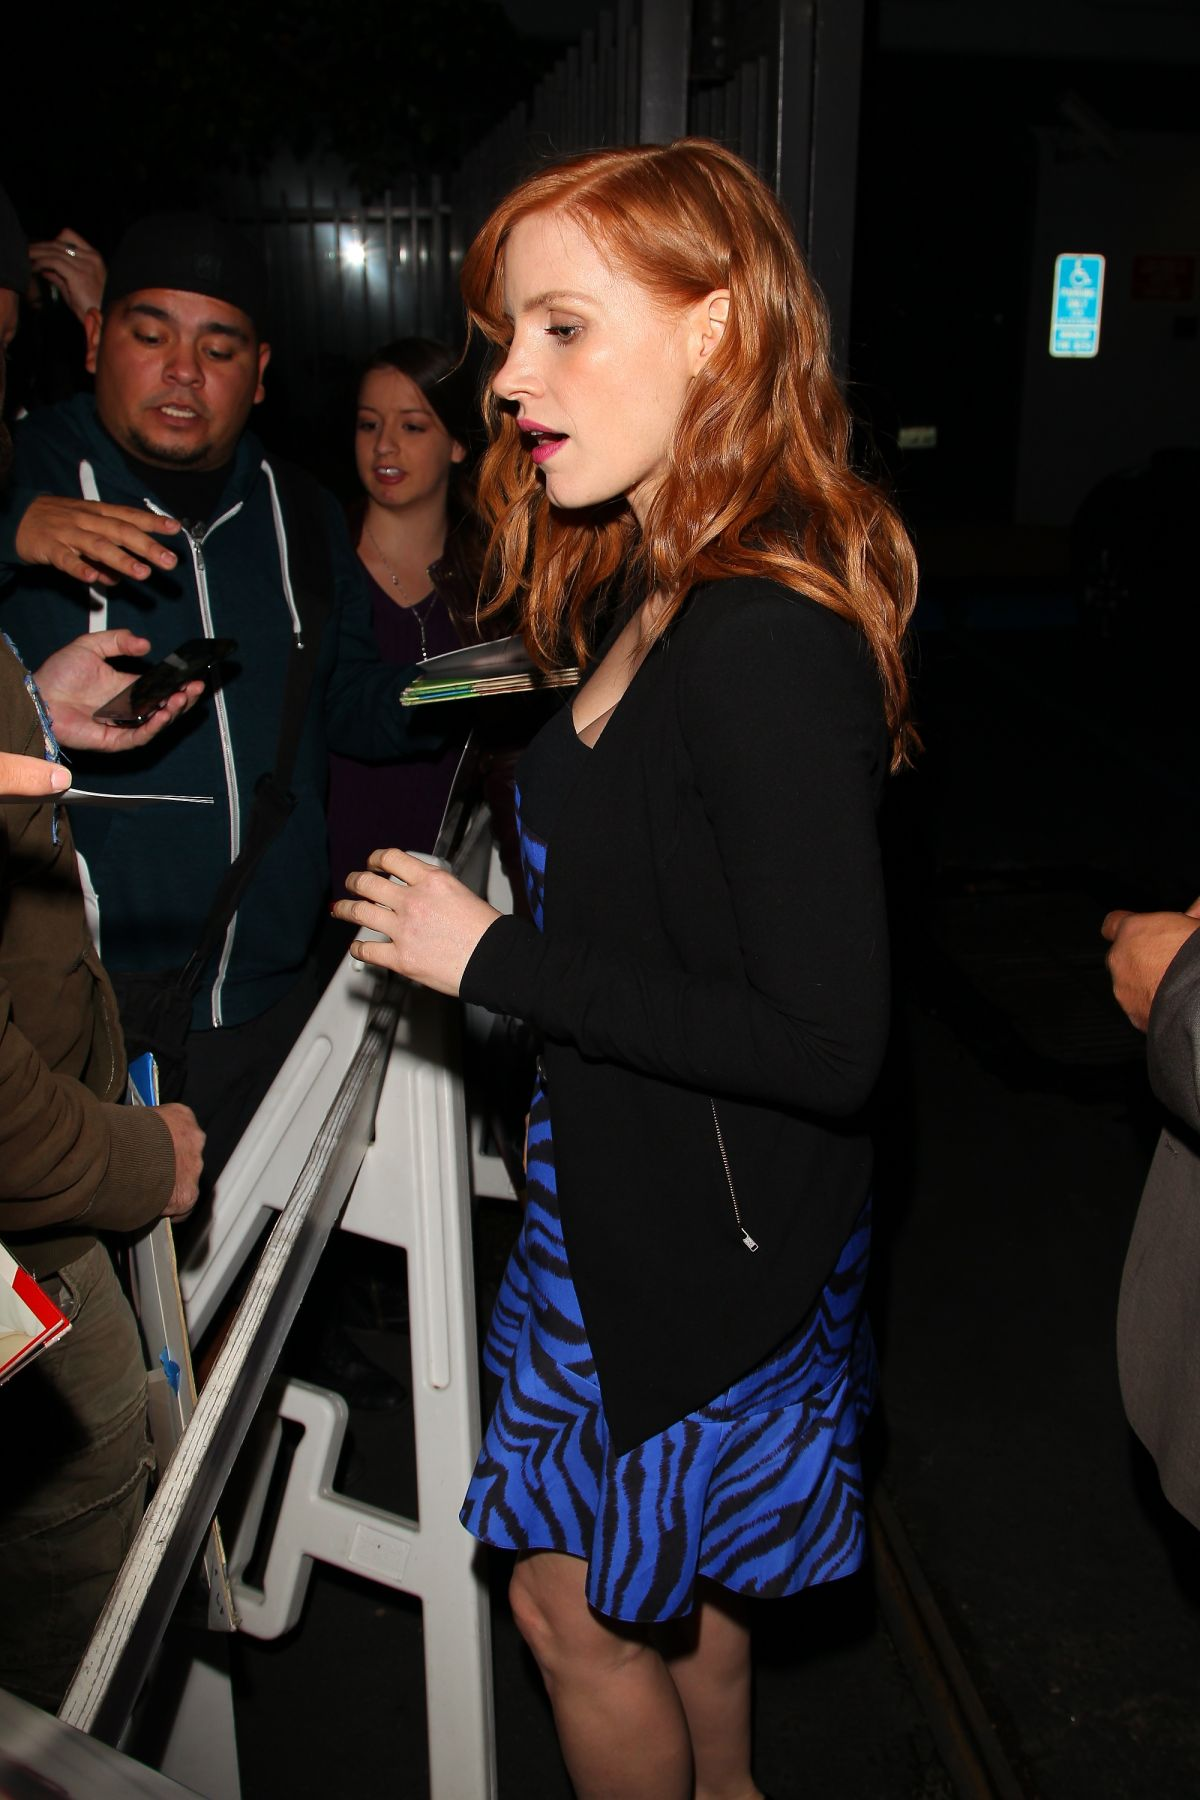 JESSICA CHASTAIN Posing with Fans at LAX Airport